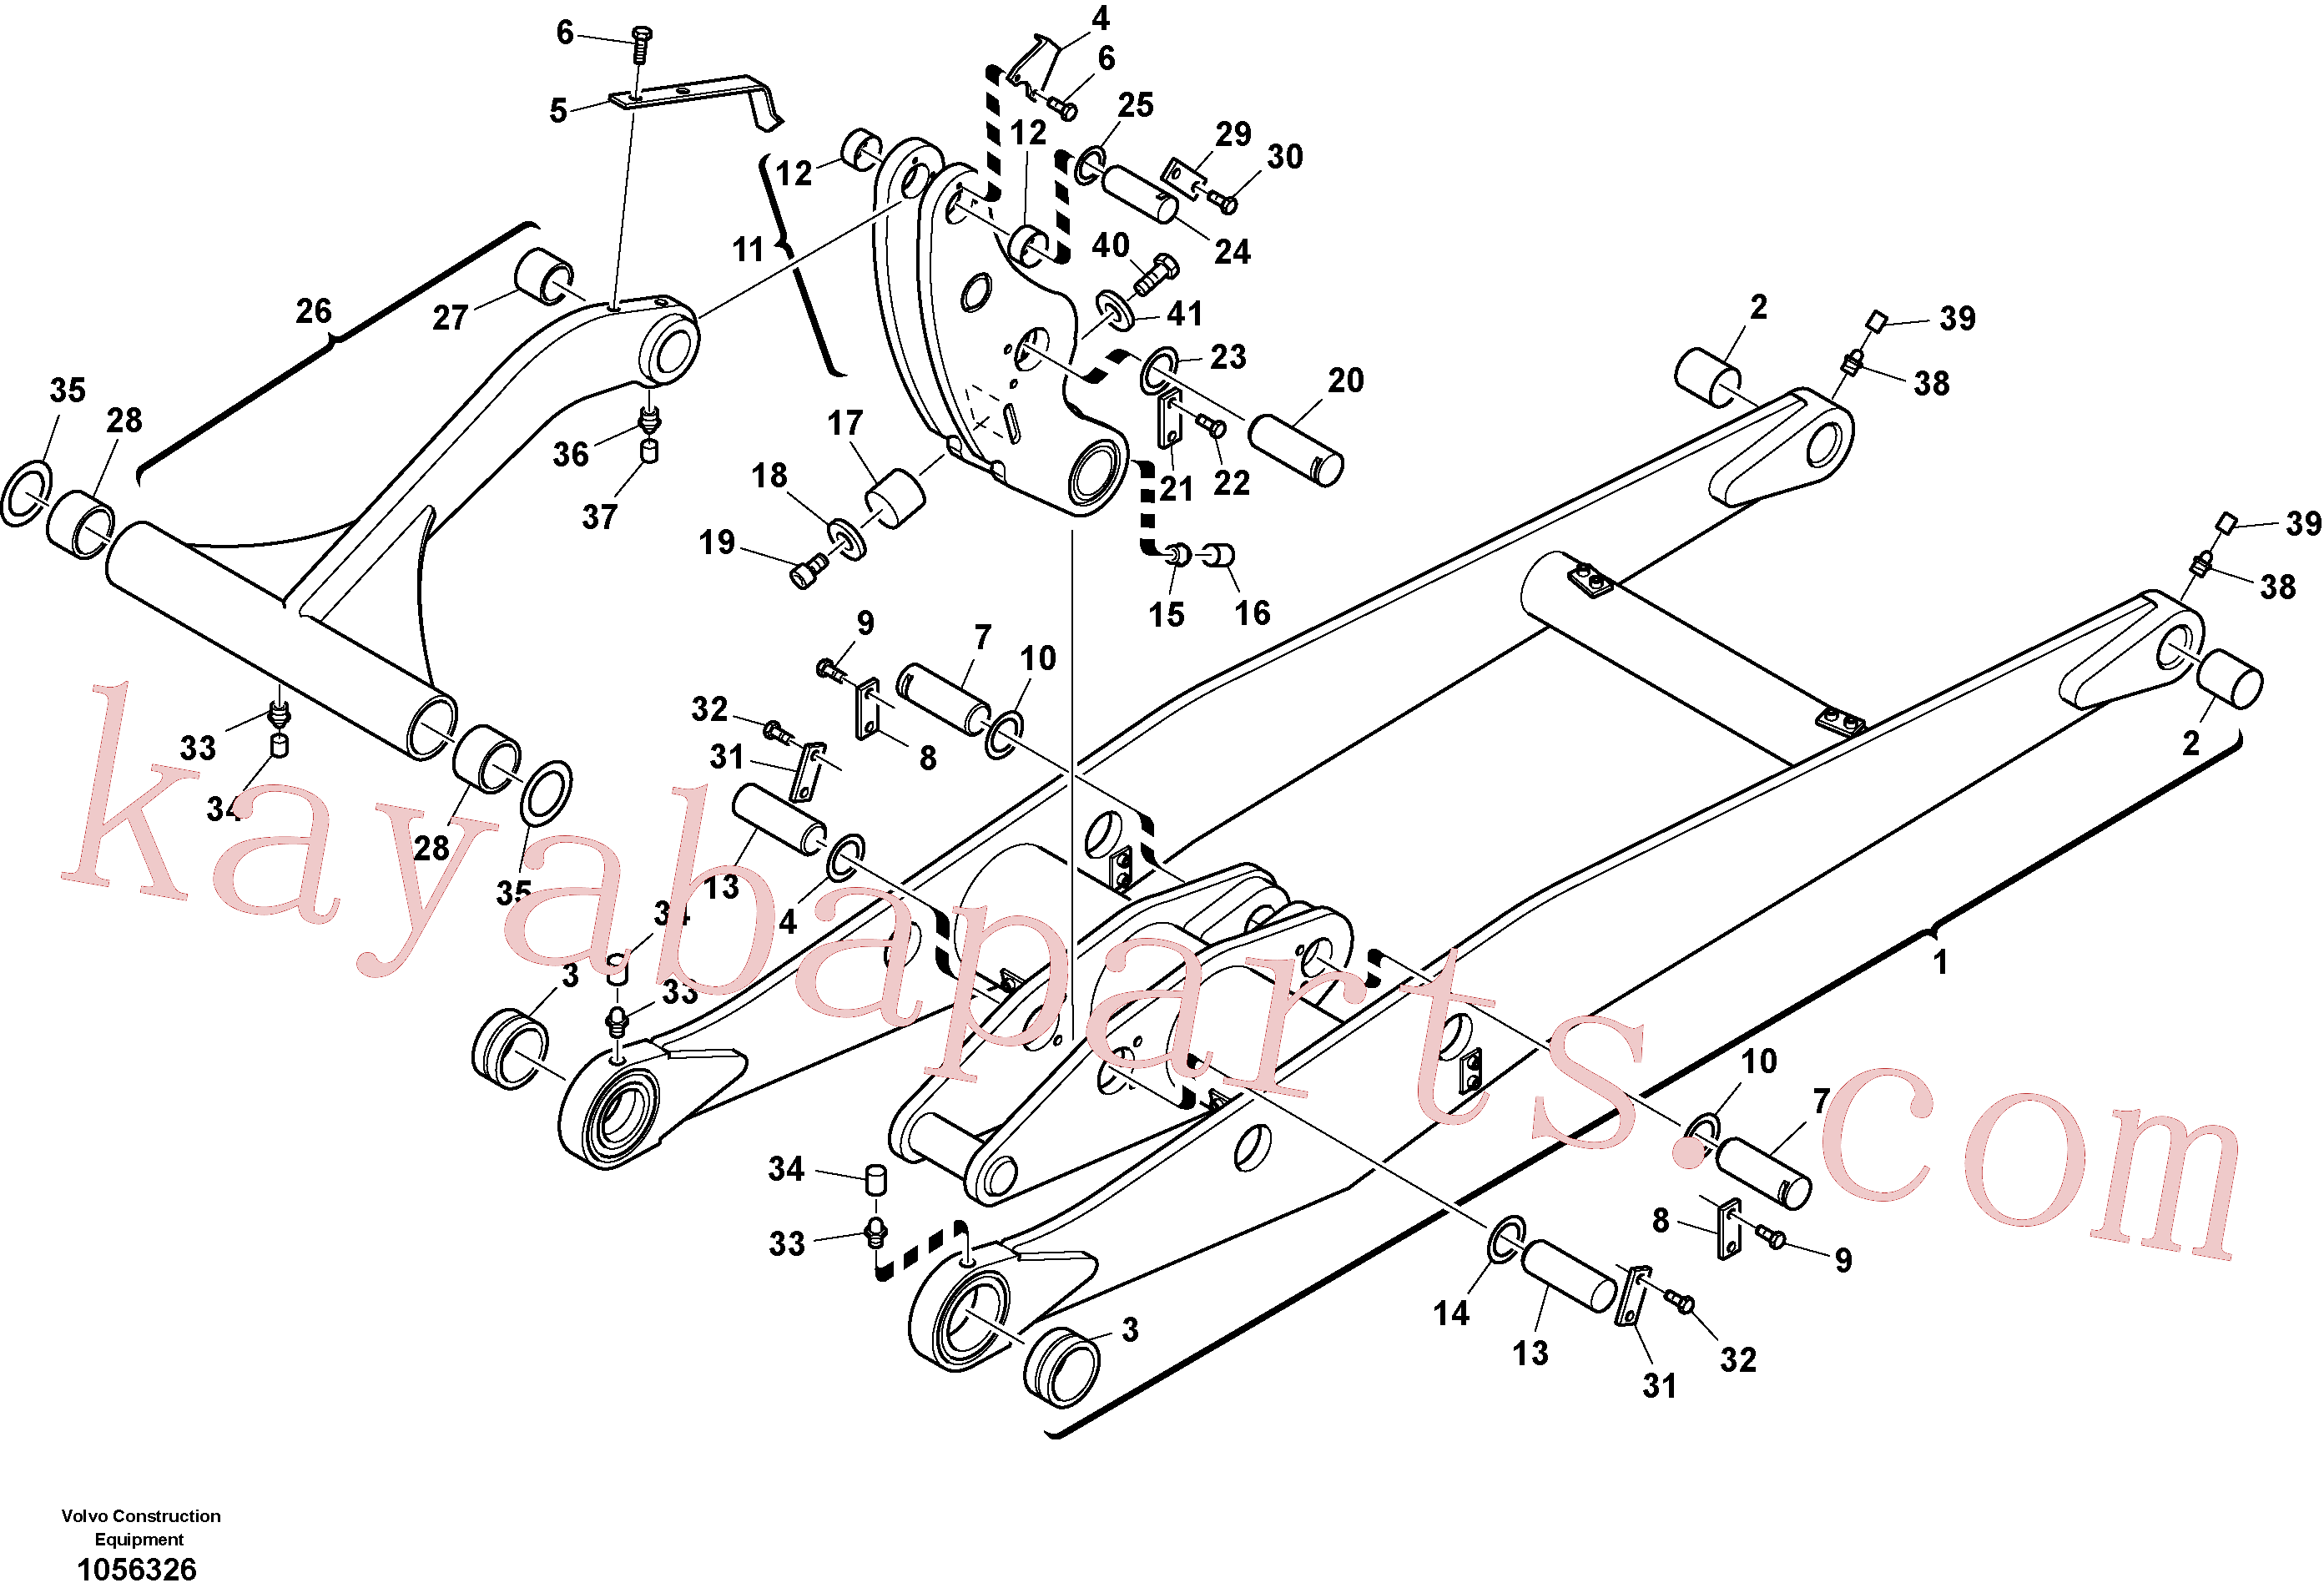 VOE11305012 for Volvo Lifting framework with assembly parts(1056326 assembly)